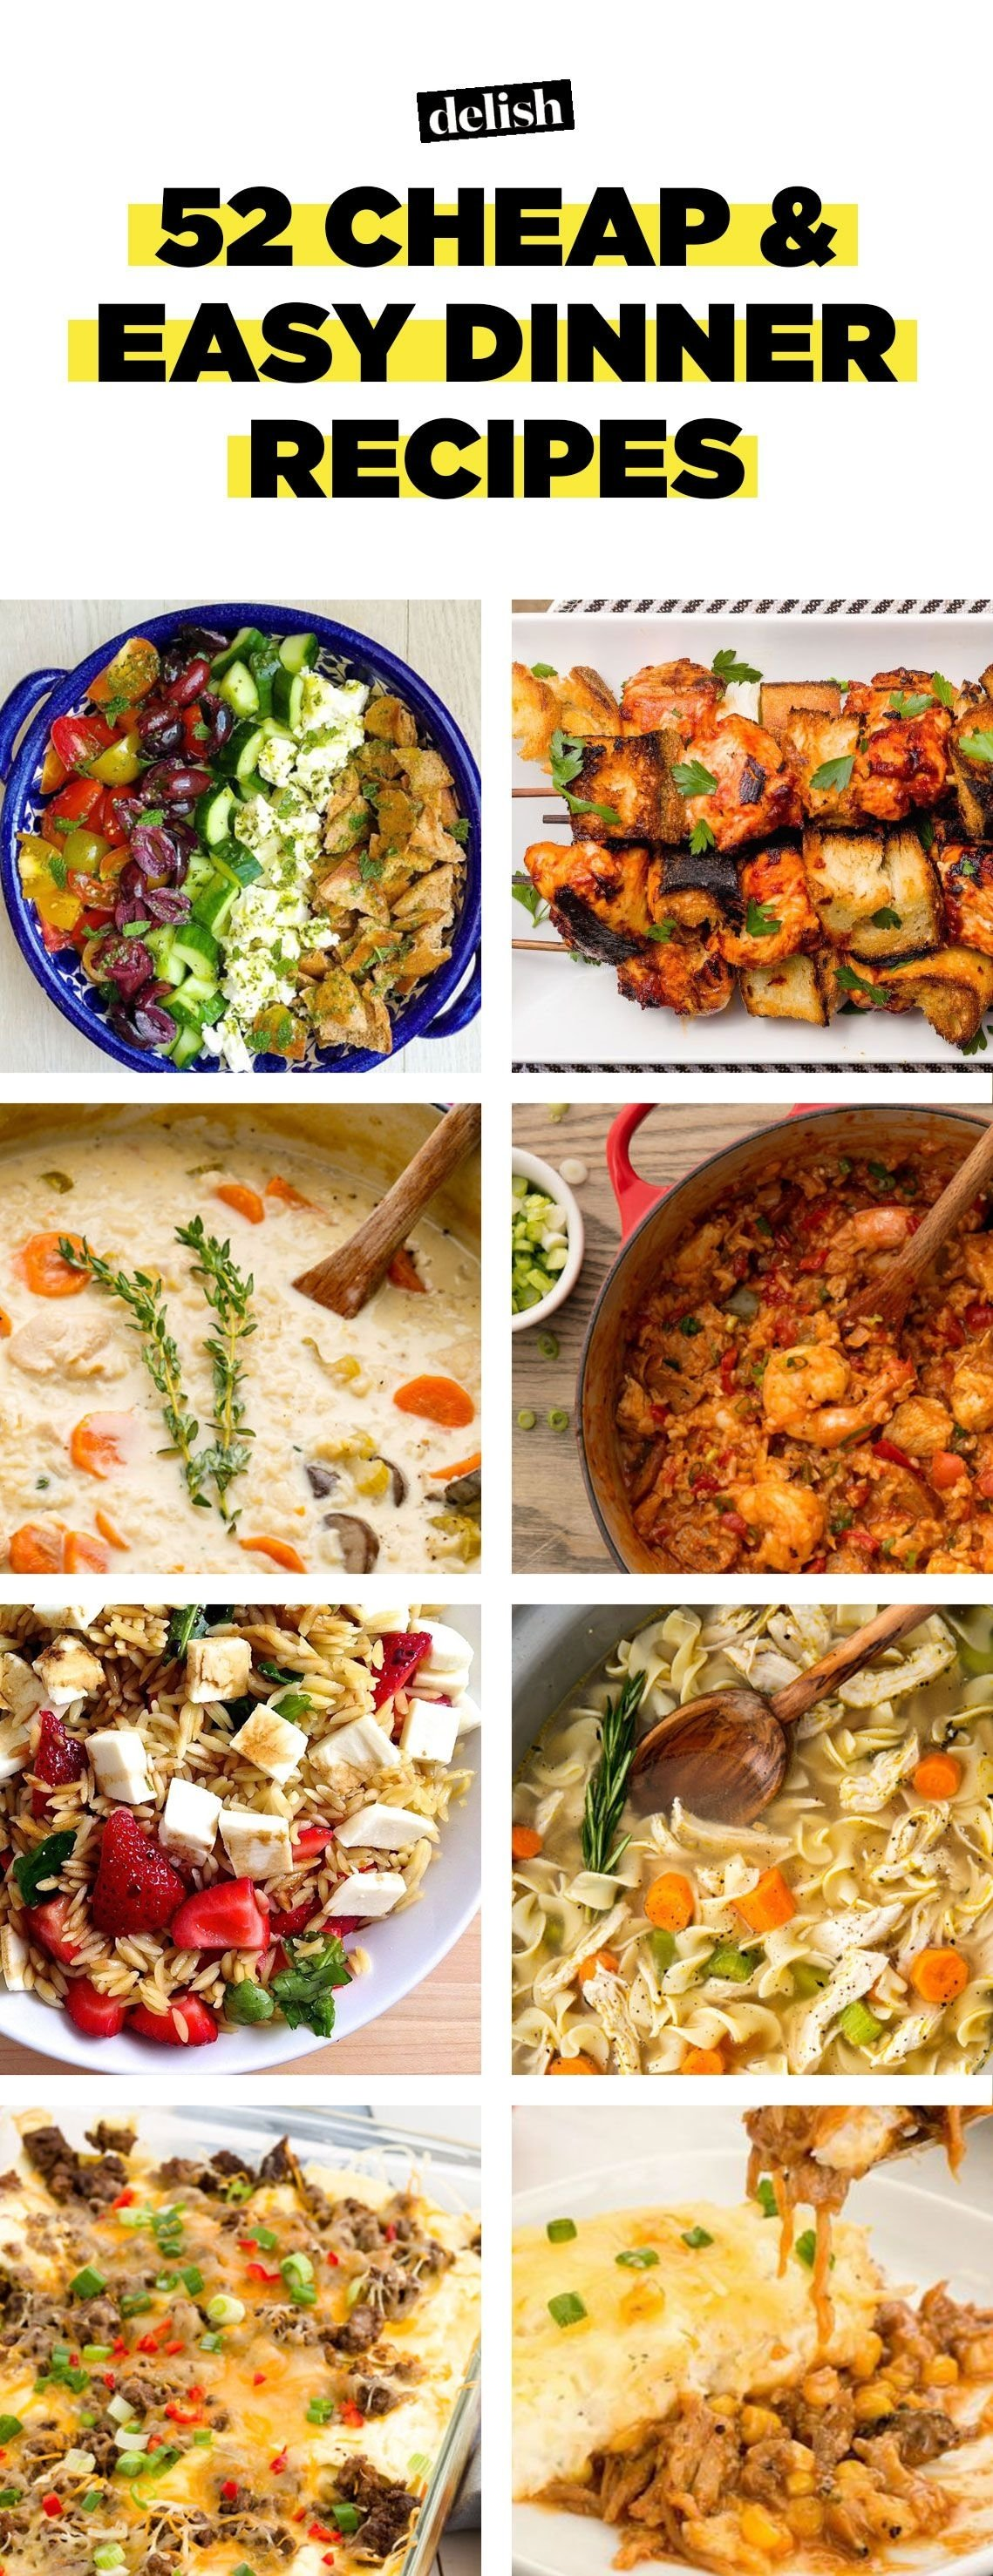 10 Trendy Cheap Dinner Ideas For 4 52 easy cheap recipes inexpensive food ideas delish 18 2020